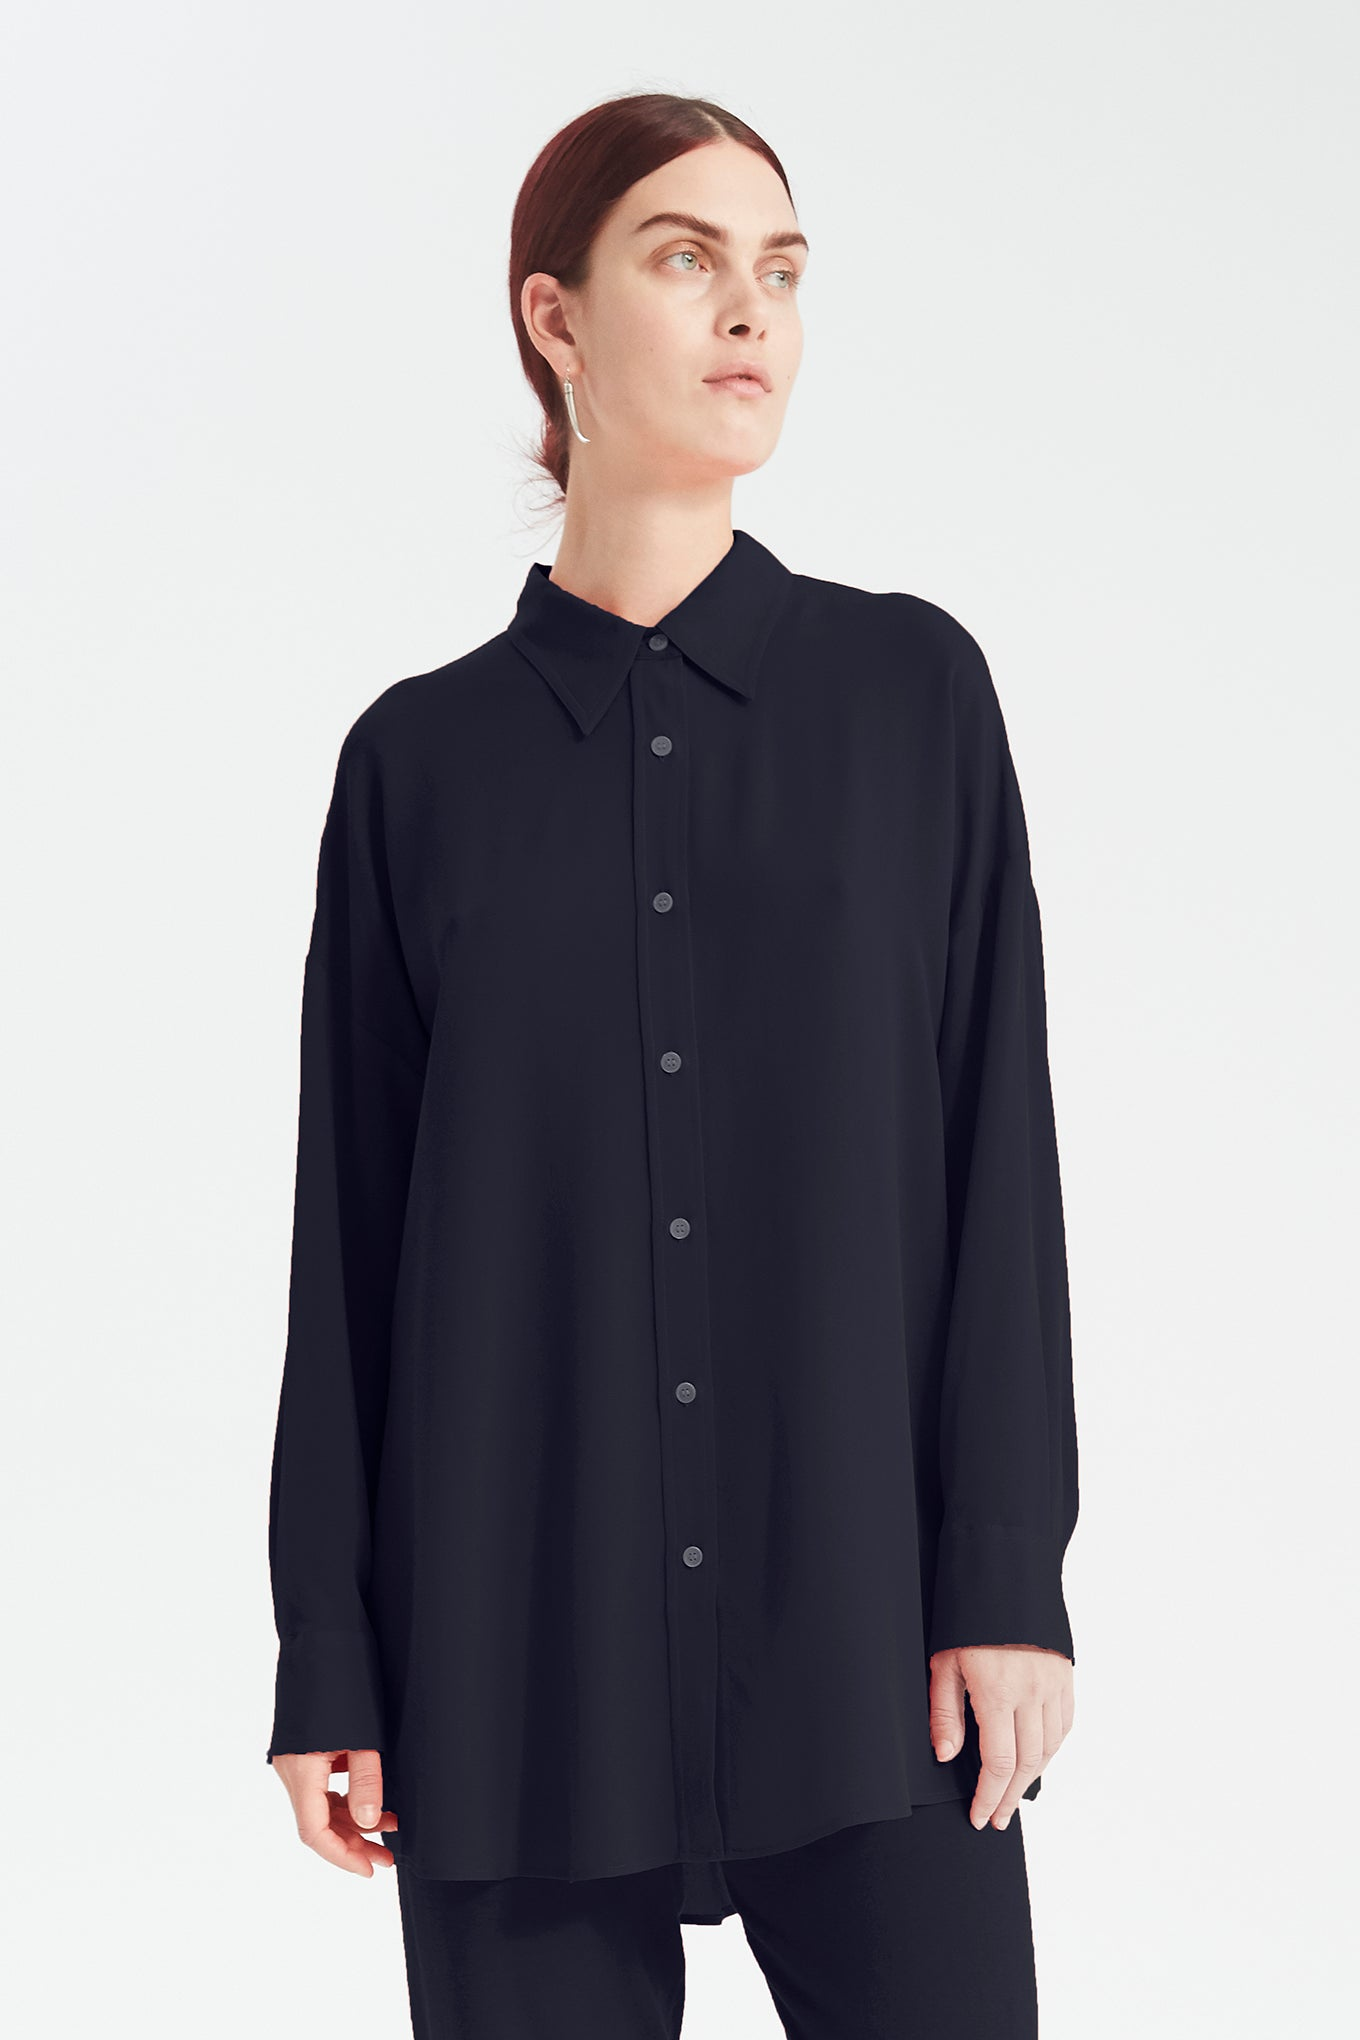 Bianca 70s Shirt - Navy